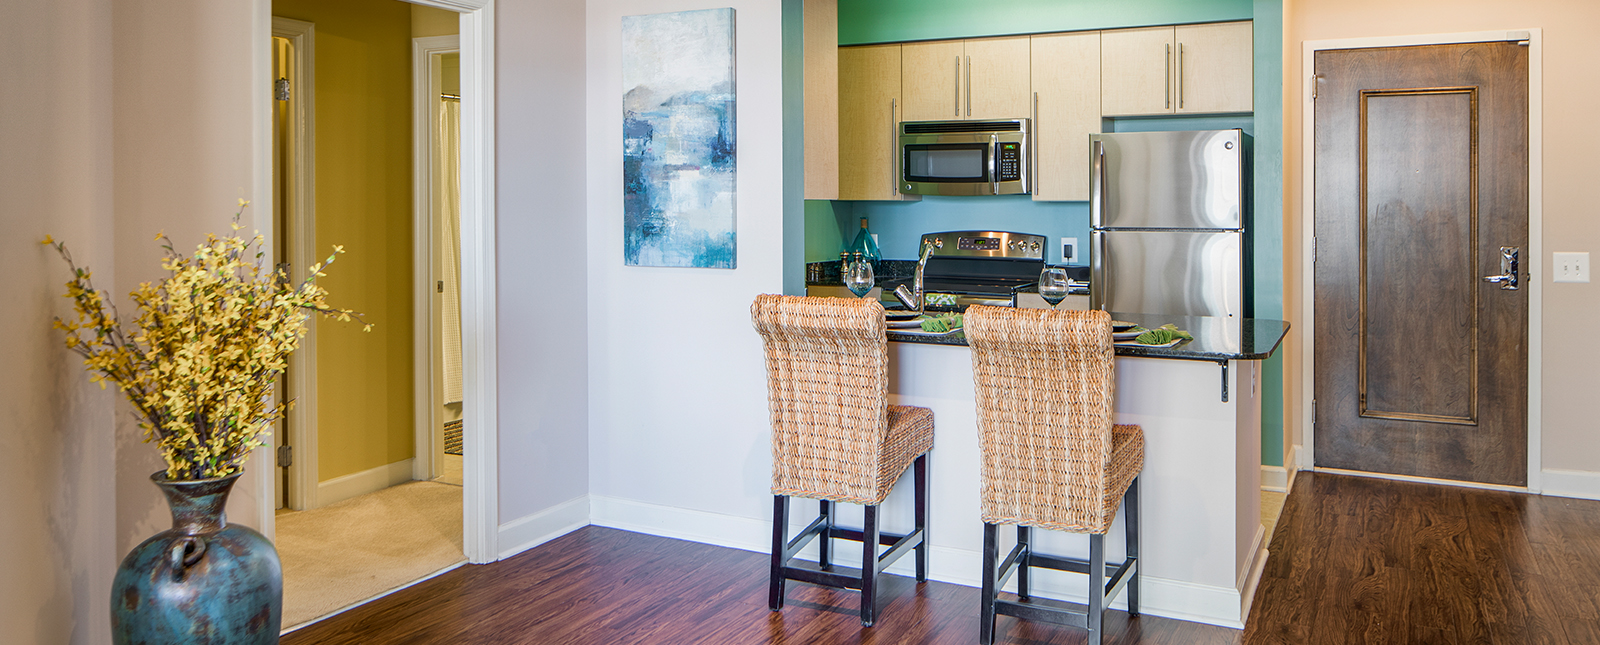 Kitchen area at Spinnaker Bay Serviced Apartments